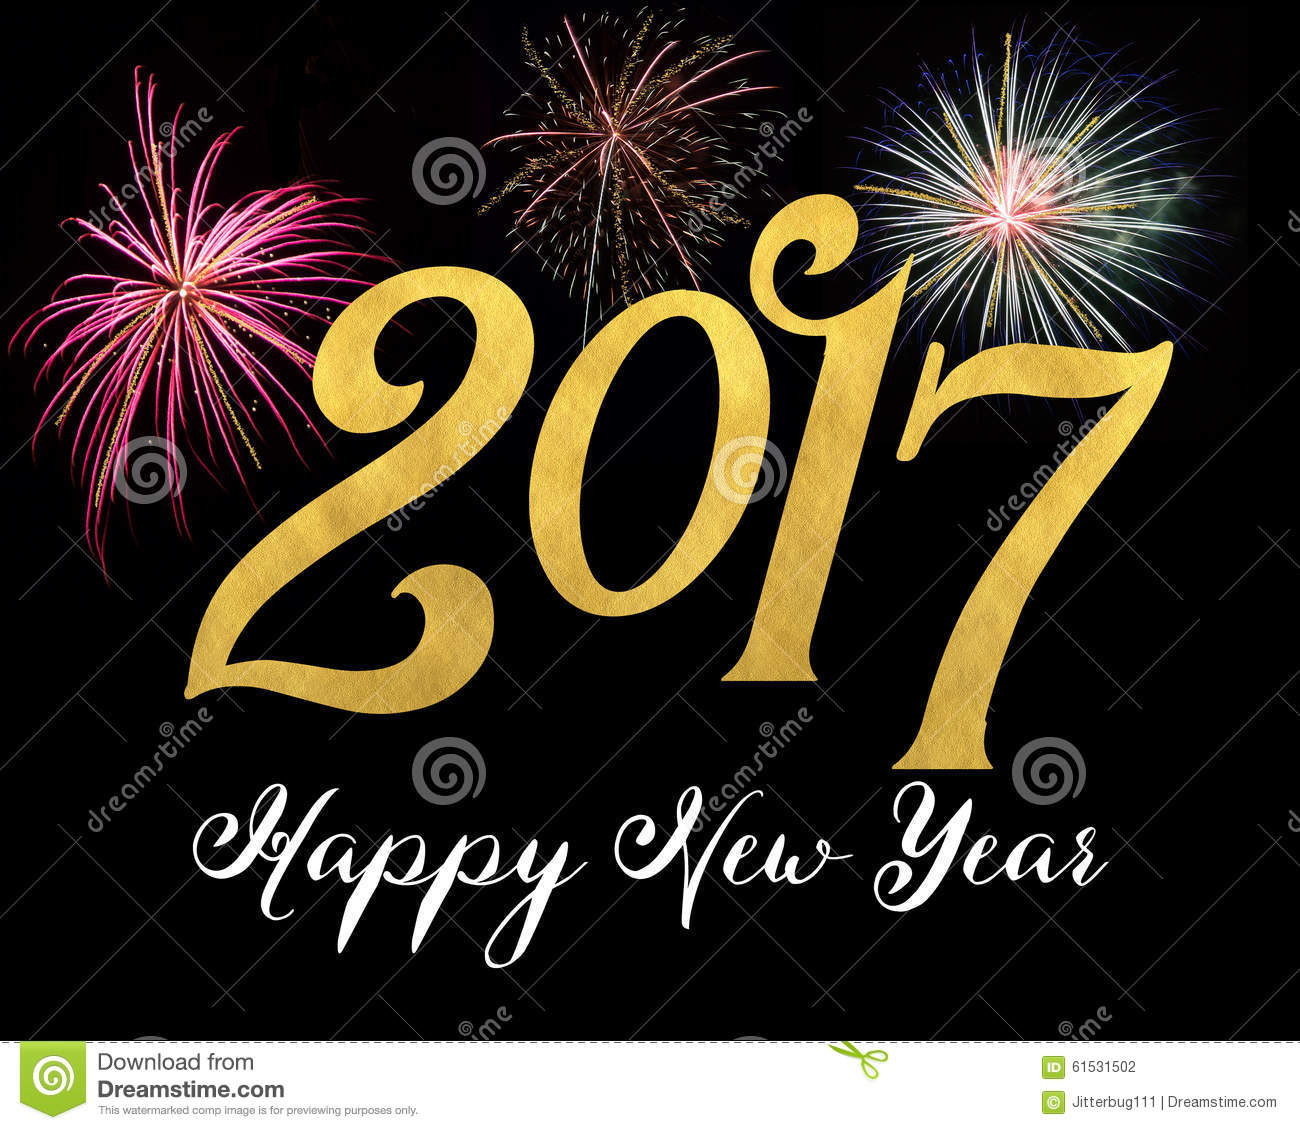 Happy New Year 2017 Stock Photo - Image: 61531502